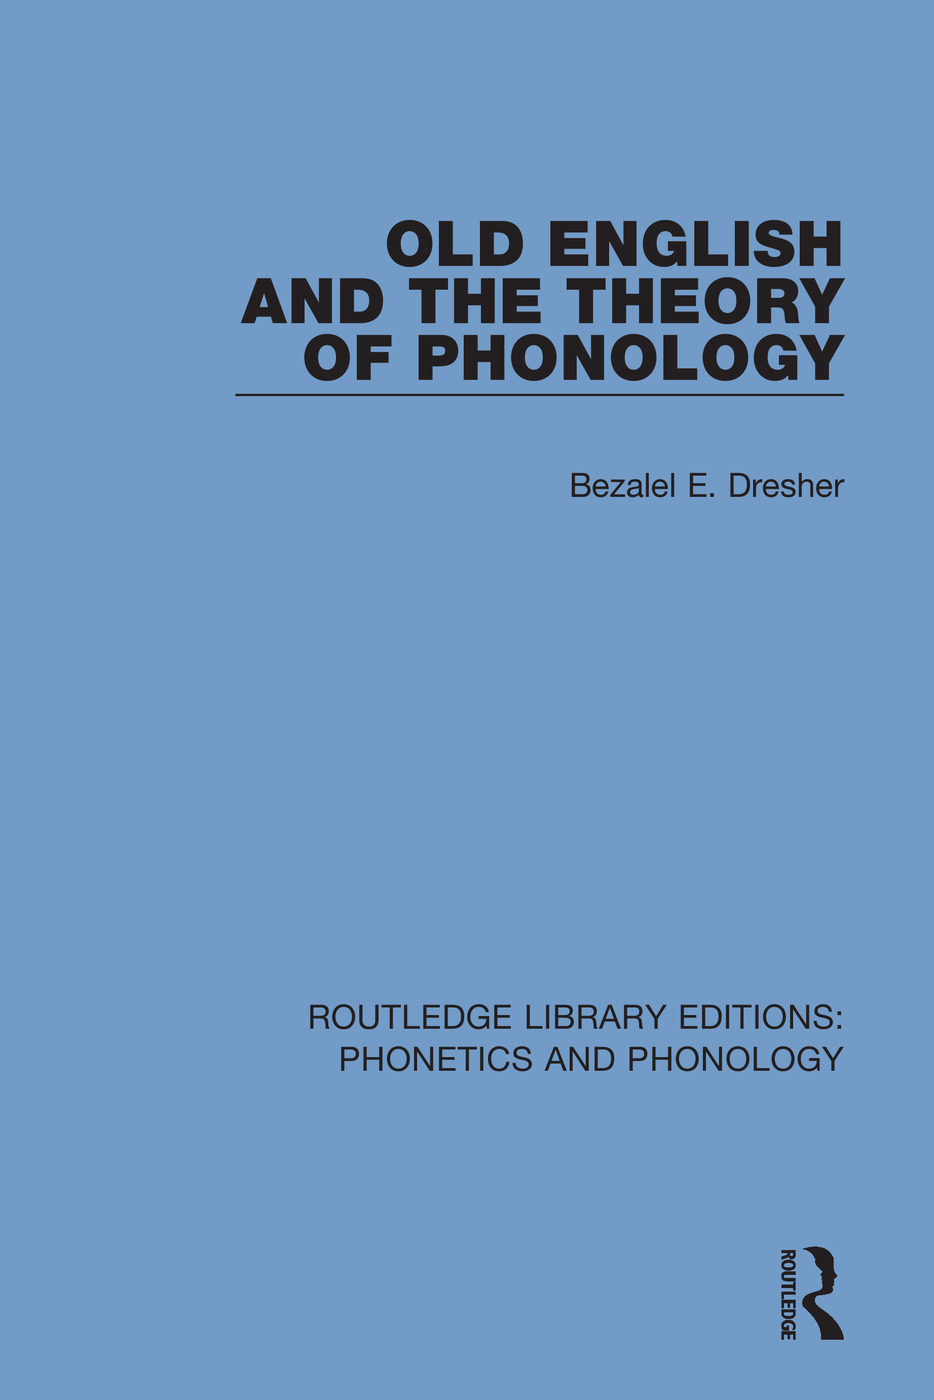 Old English and the Theory of Phonology